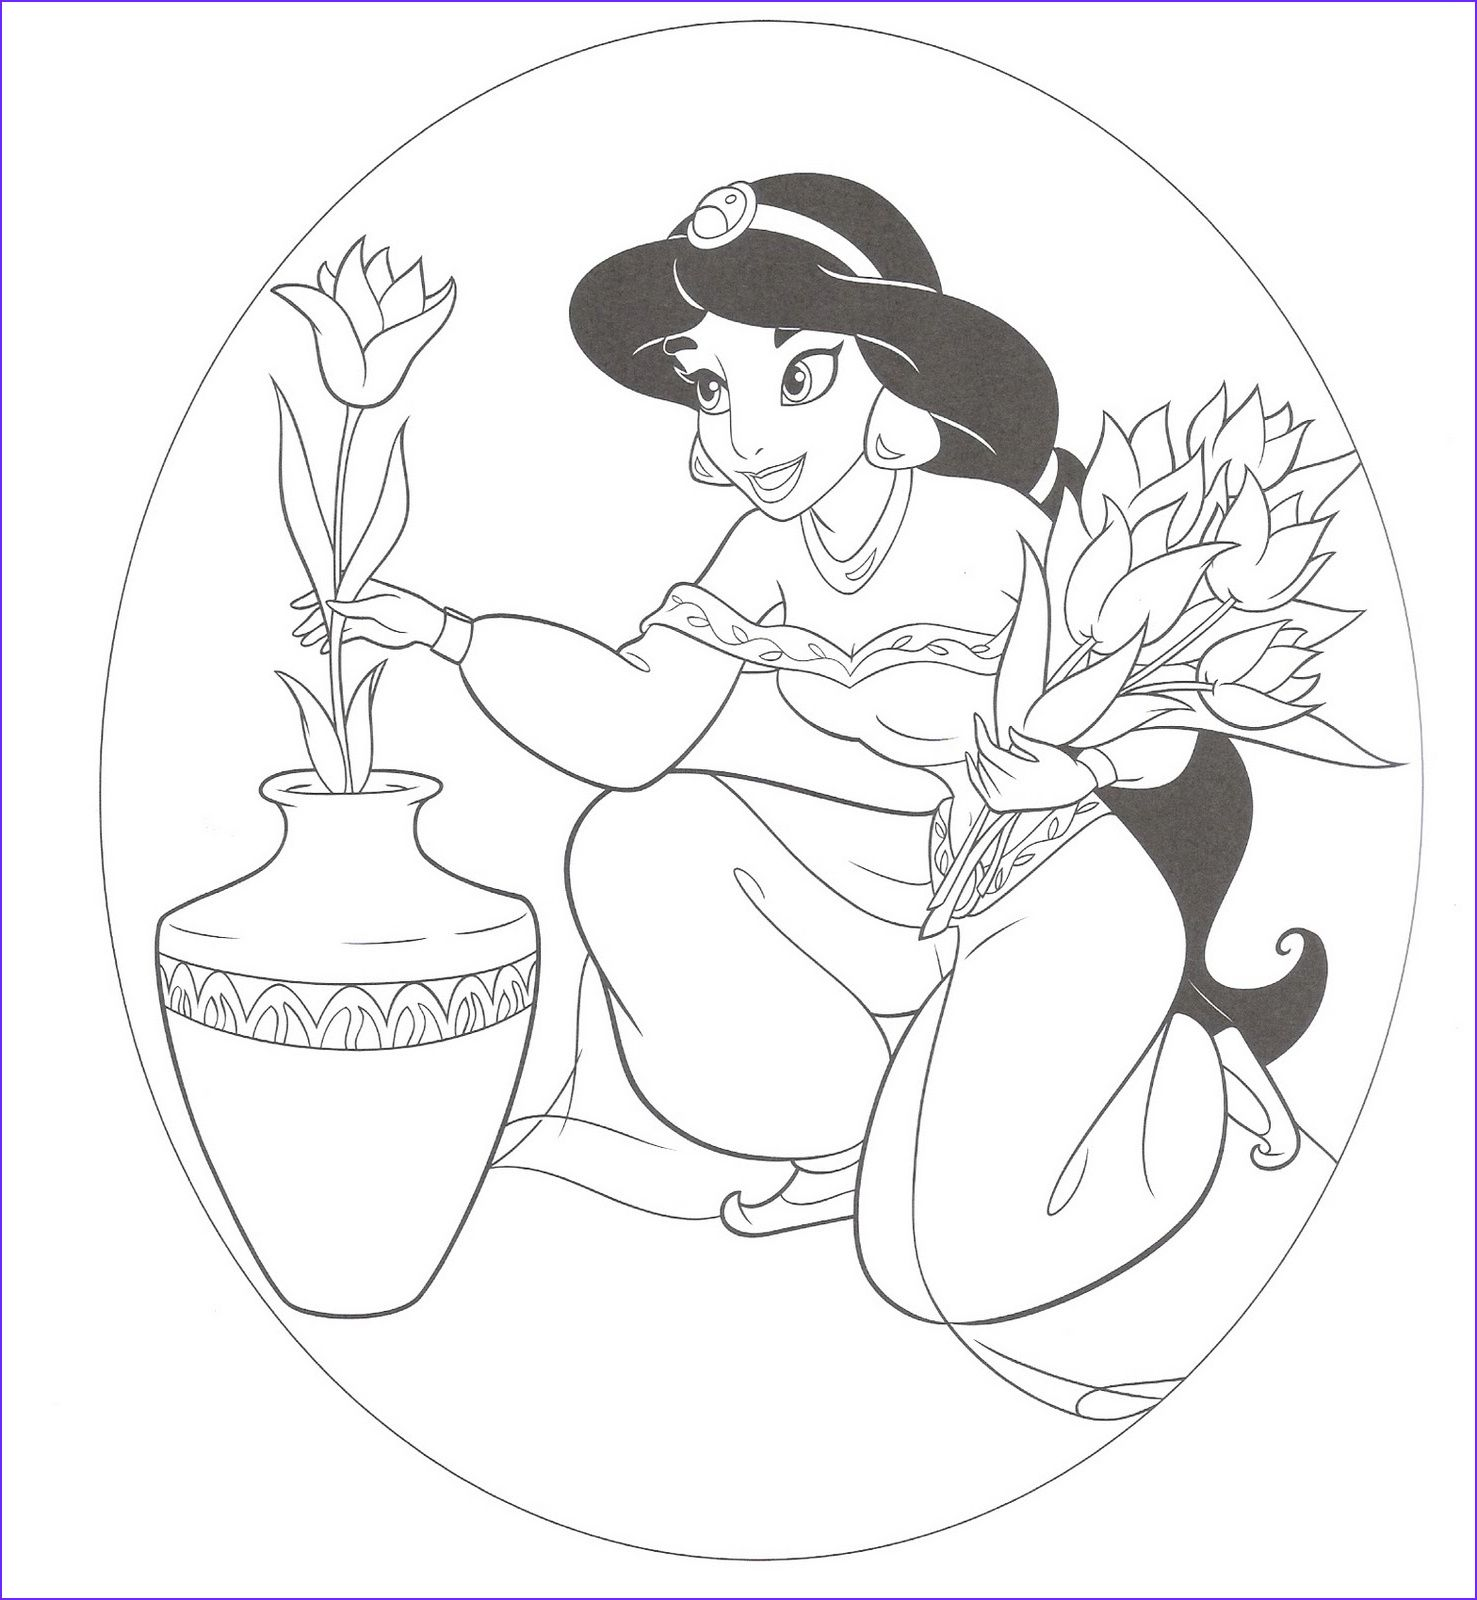 Disney Princess Coloring Pages For Kids Disney Princess Colors Disney Princess Coloring Pages Princess Coloring